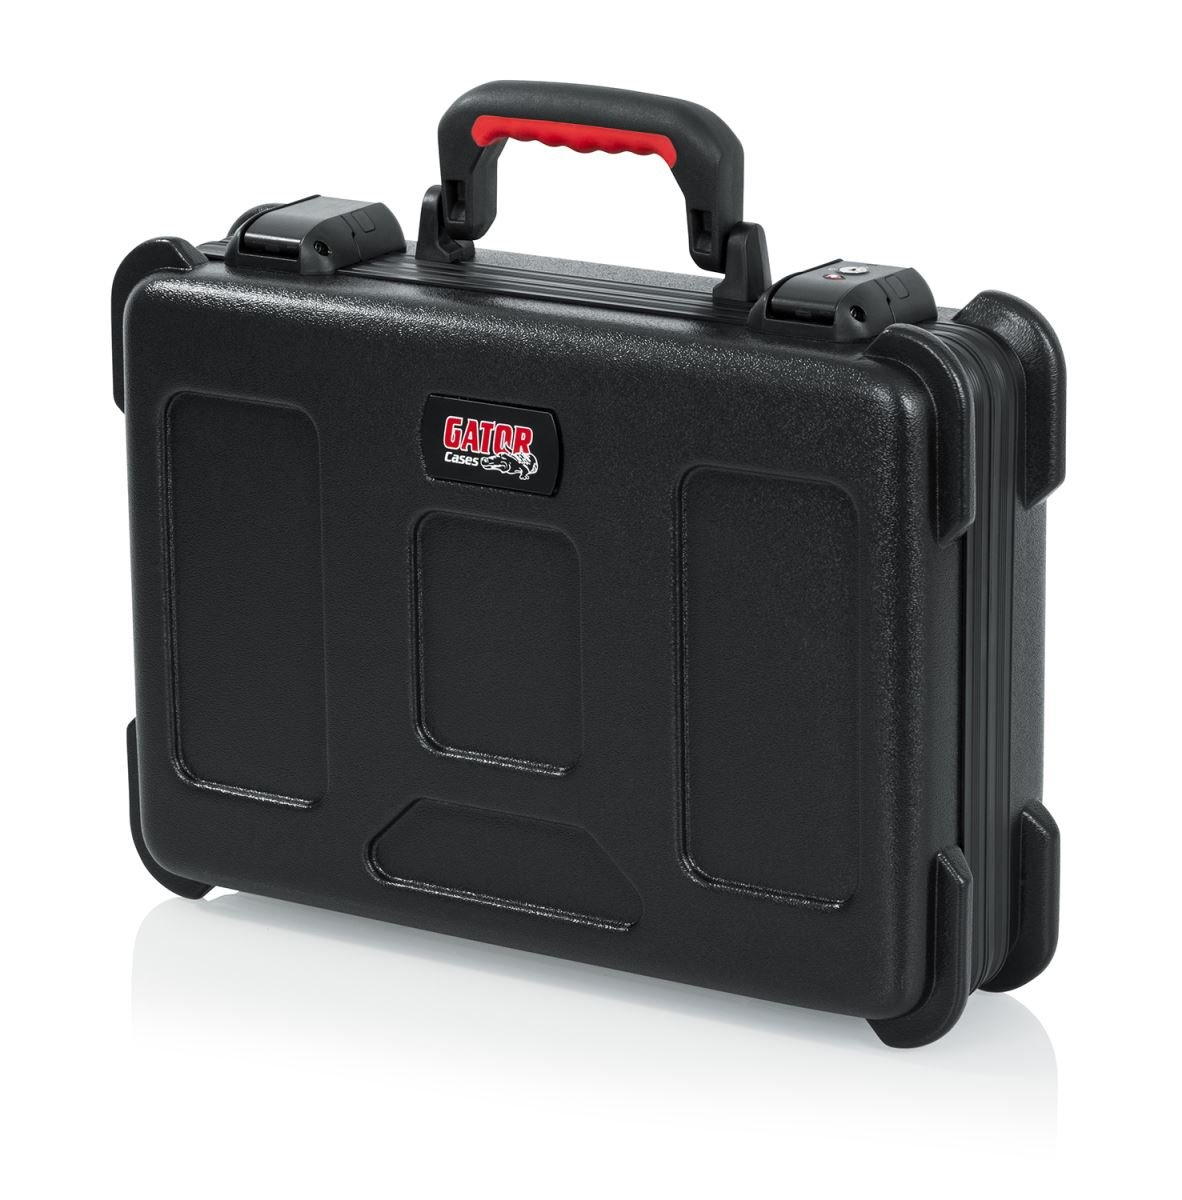 TSA Series ATA Case for (6) Wireless Microphones with Battery Storage